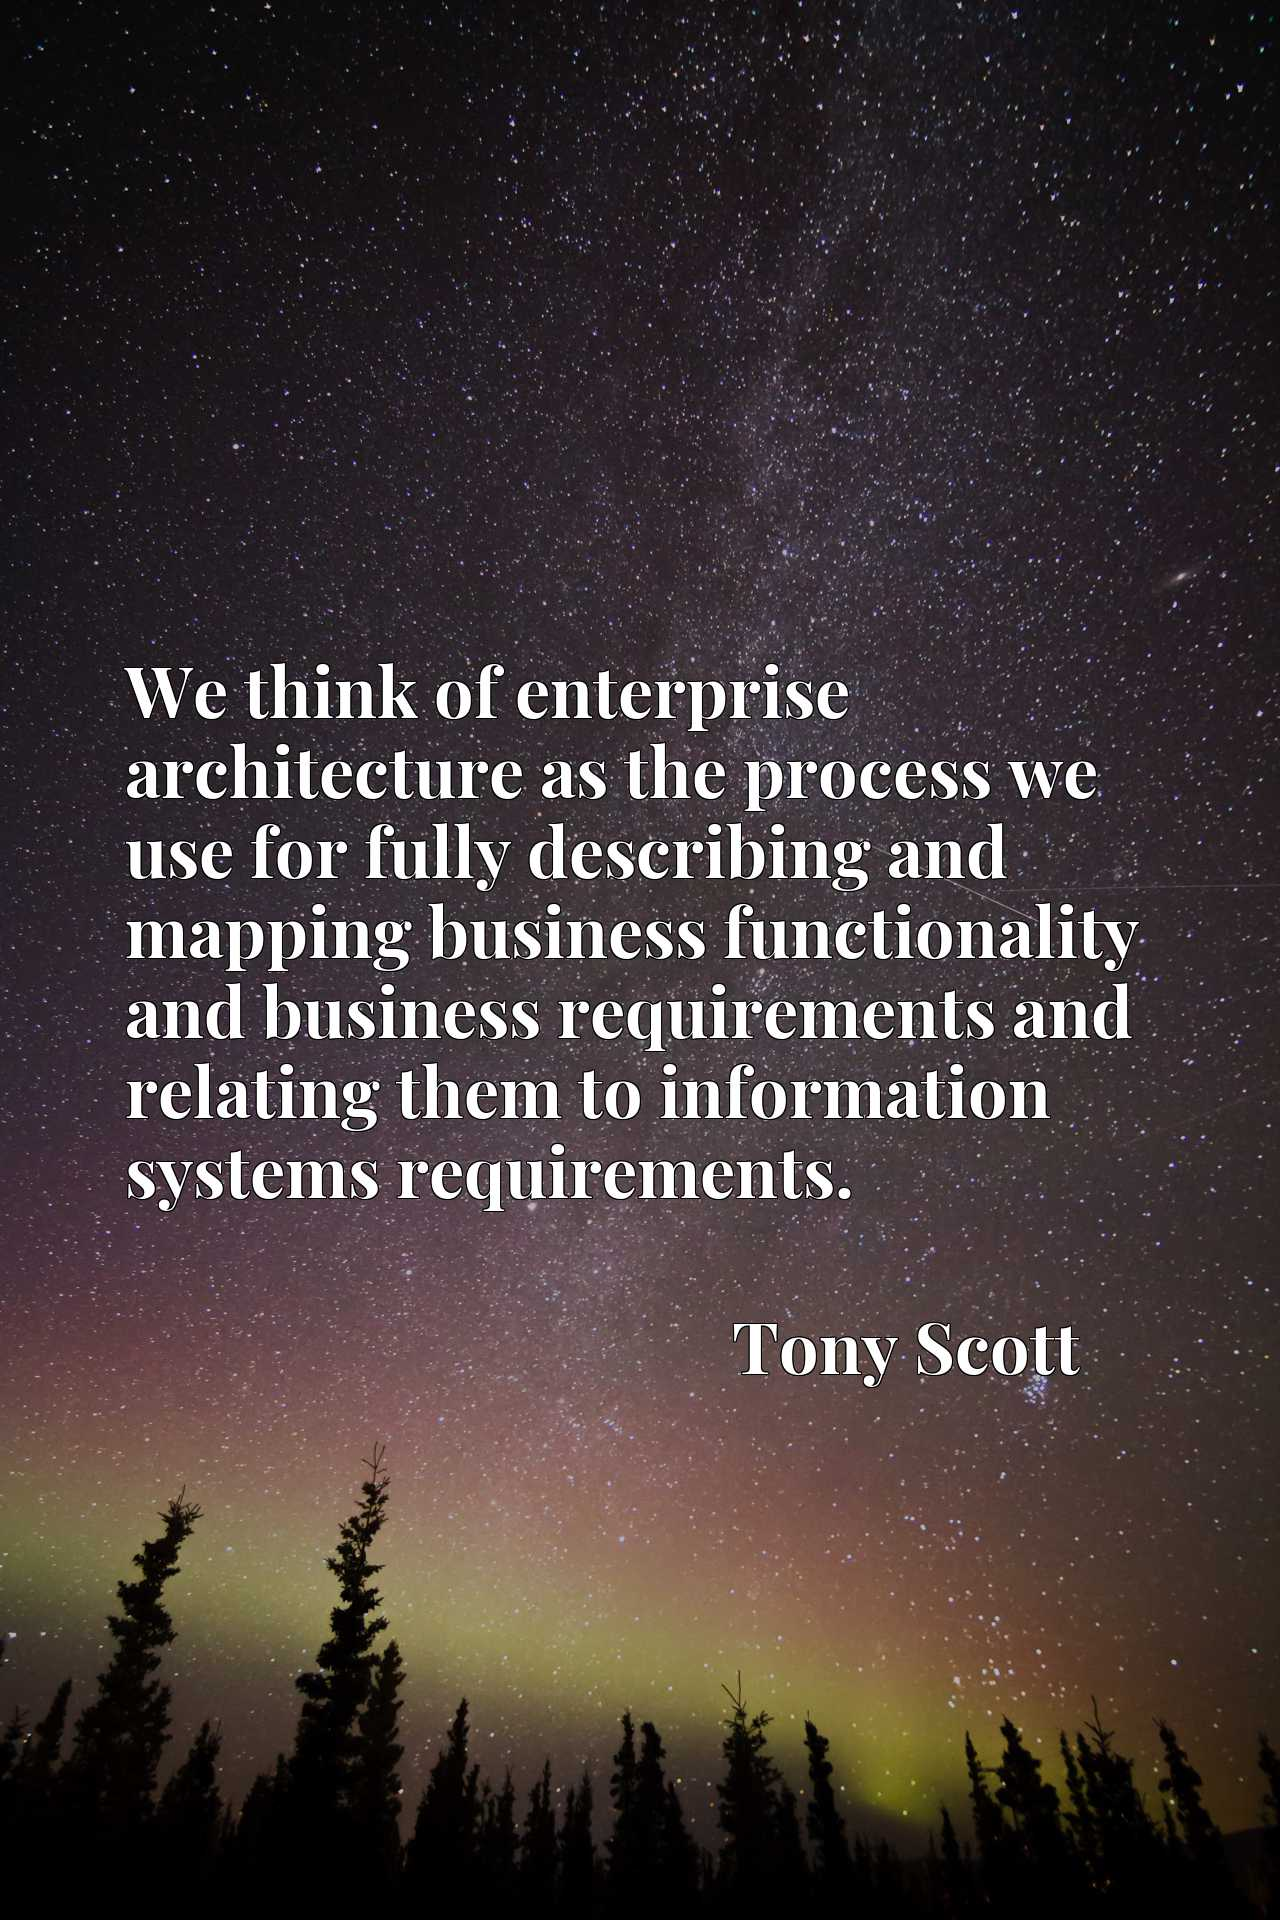 We think of enterprise architecture as the process we use for fully describing and mapping business functionality and business requirements and relating them to information systems requirements.